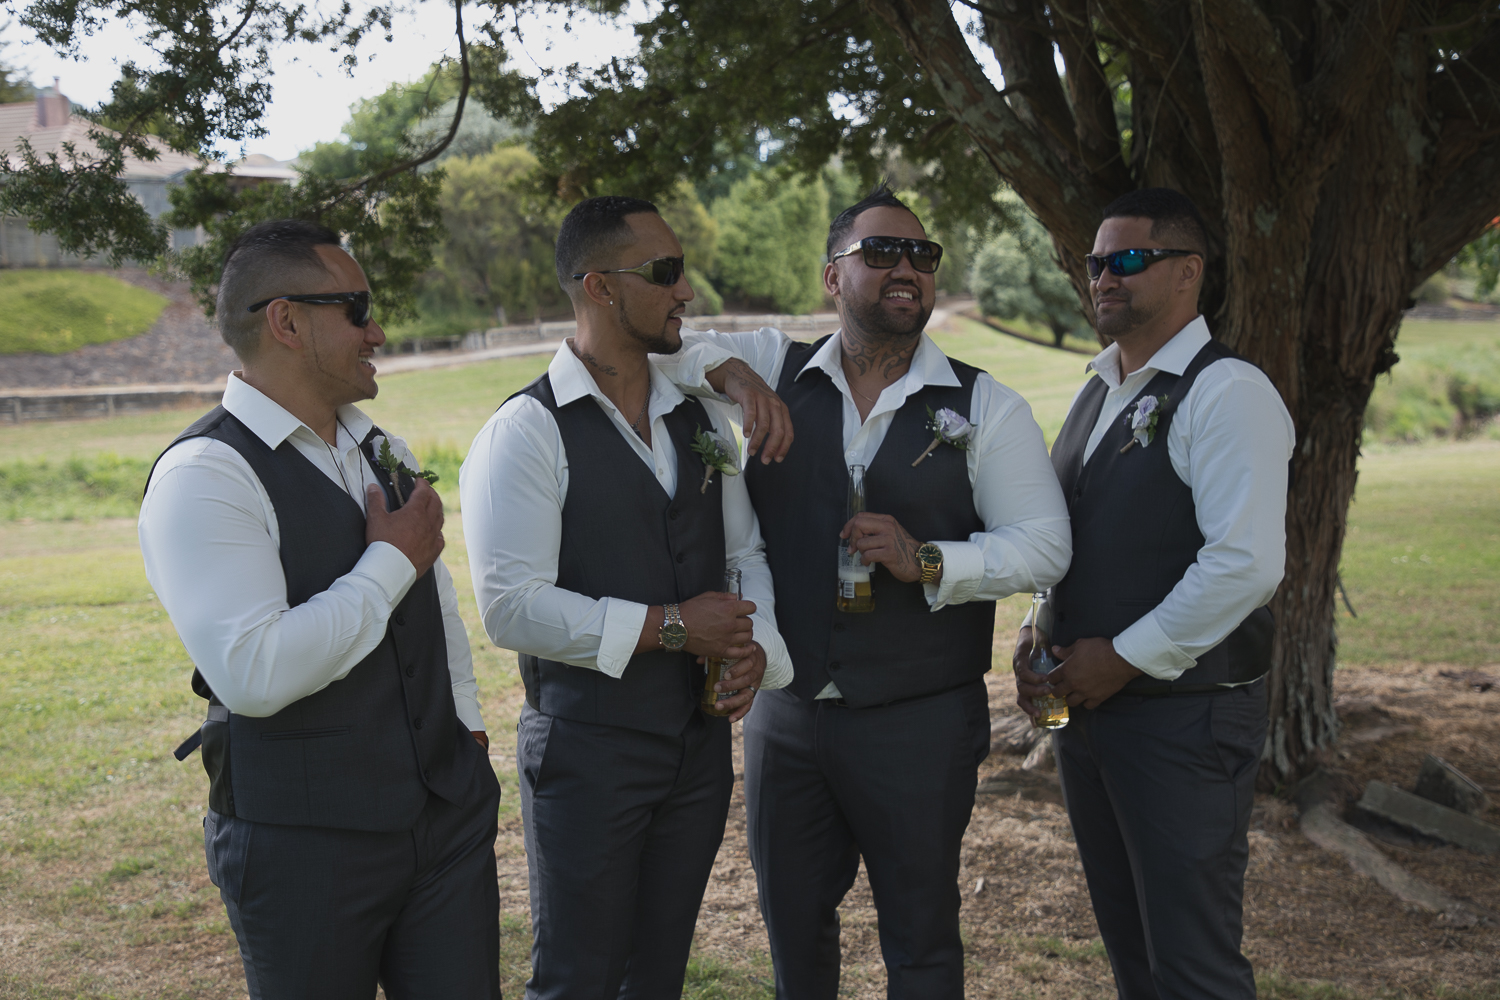 groom with groomsmen laughing together